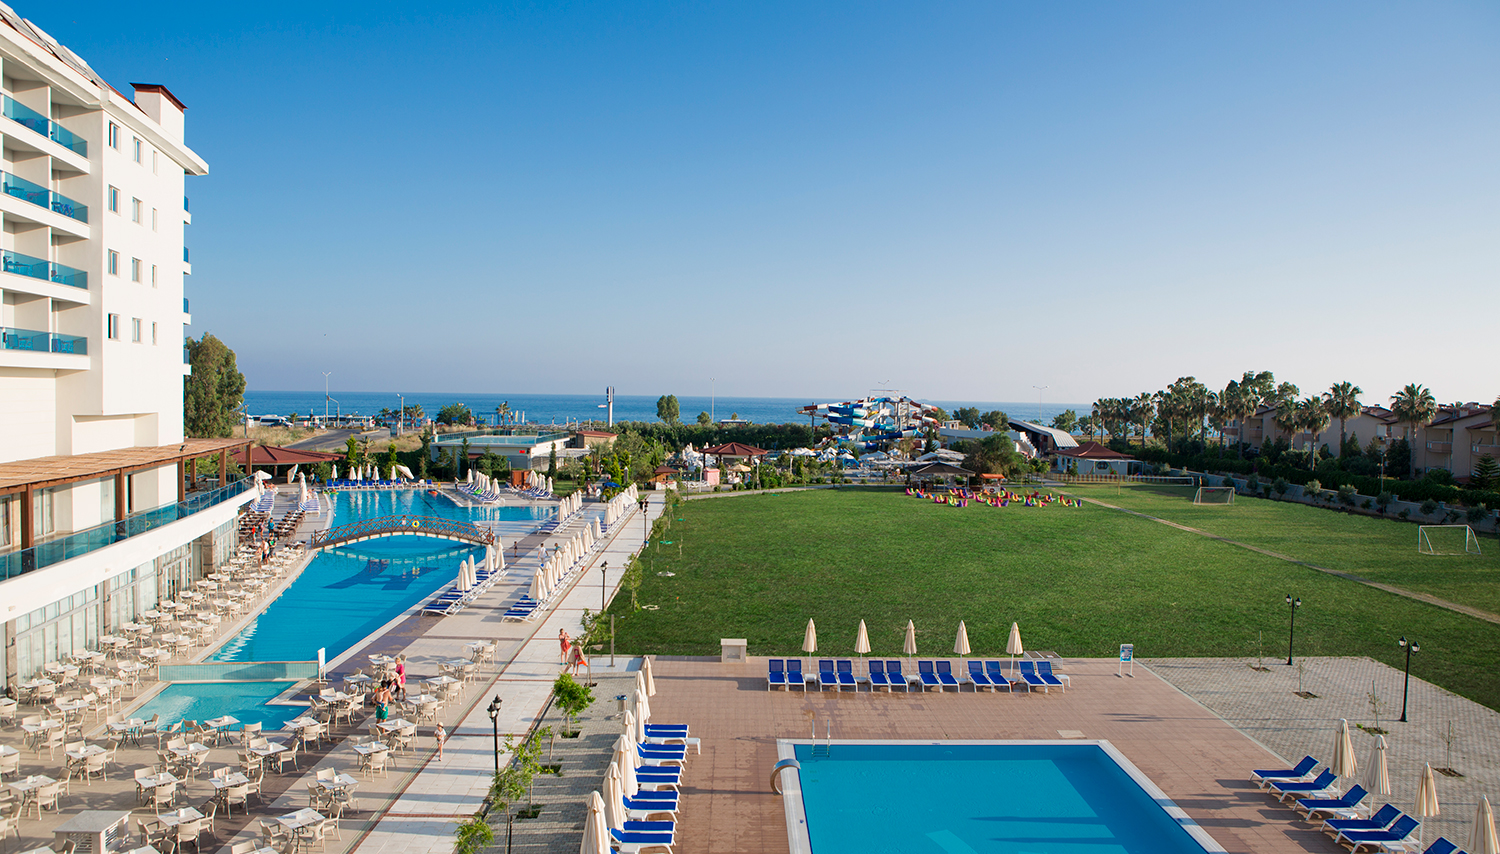 Kahya Resort Aqua & SPA hotell (Antalya, Türgi)